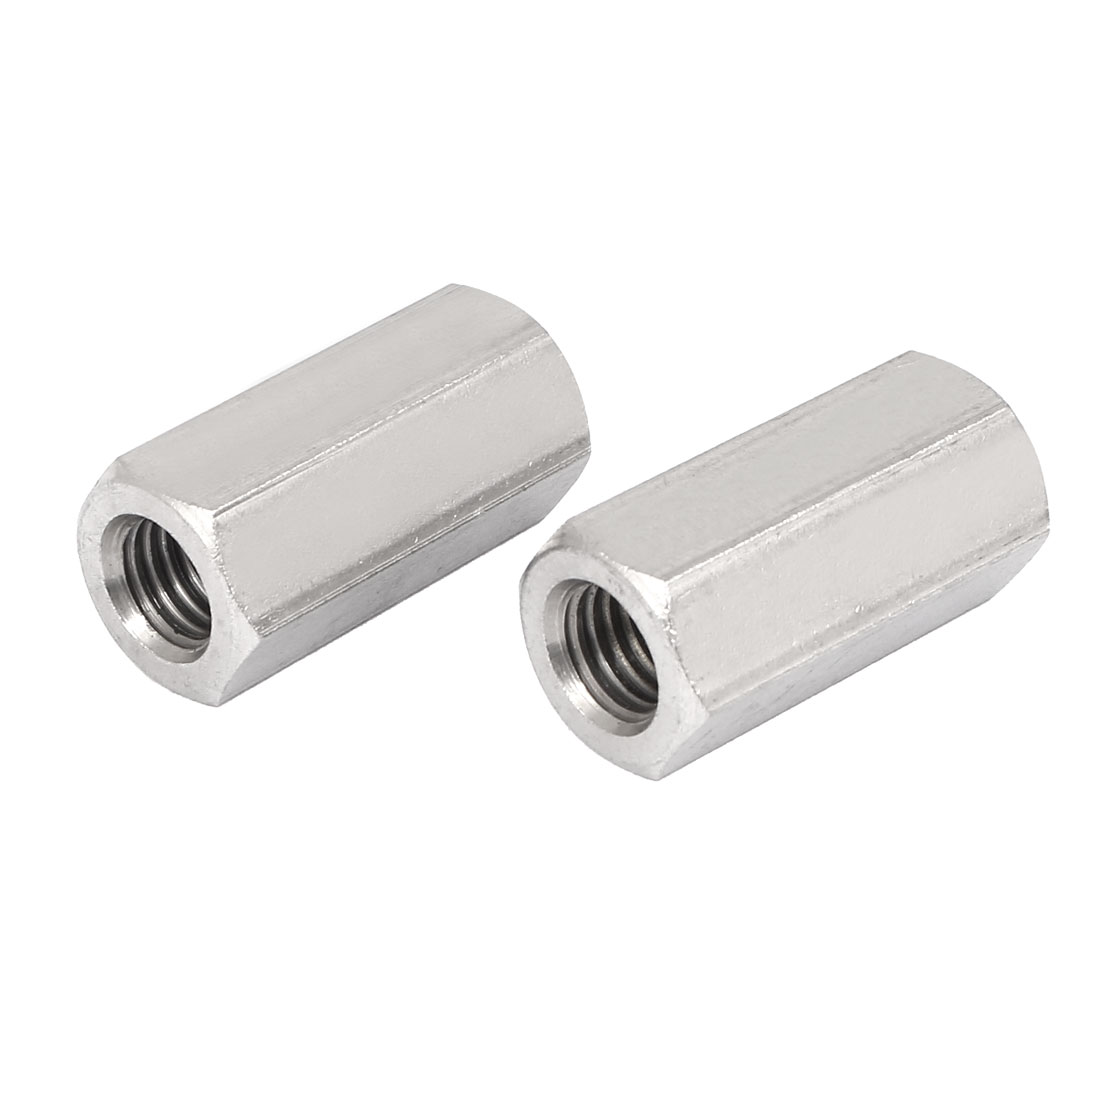 M12x40mm Stainless Steel Threaded Bar Rod Studding Hex Connector Deep Nut 2pcs